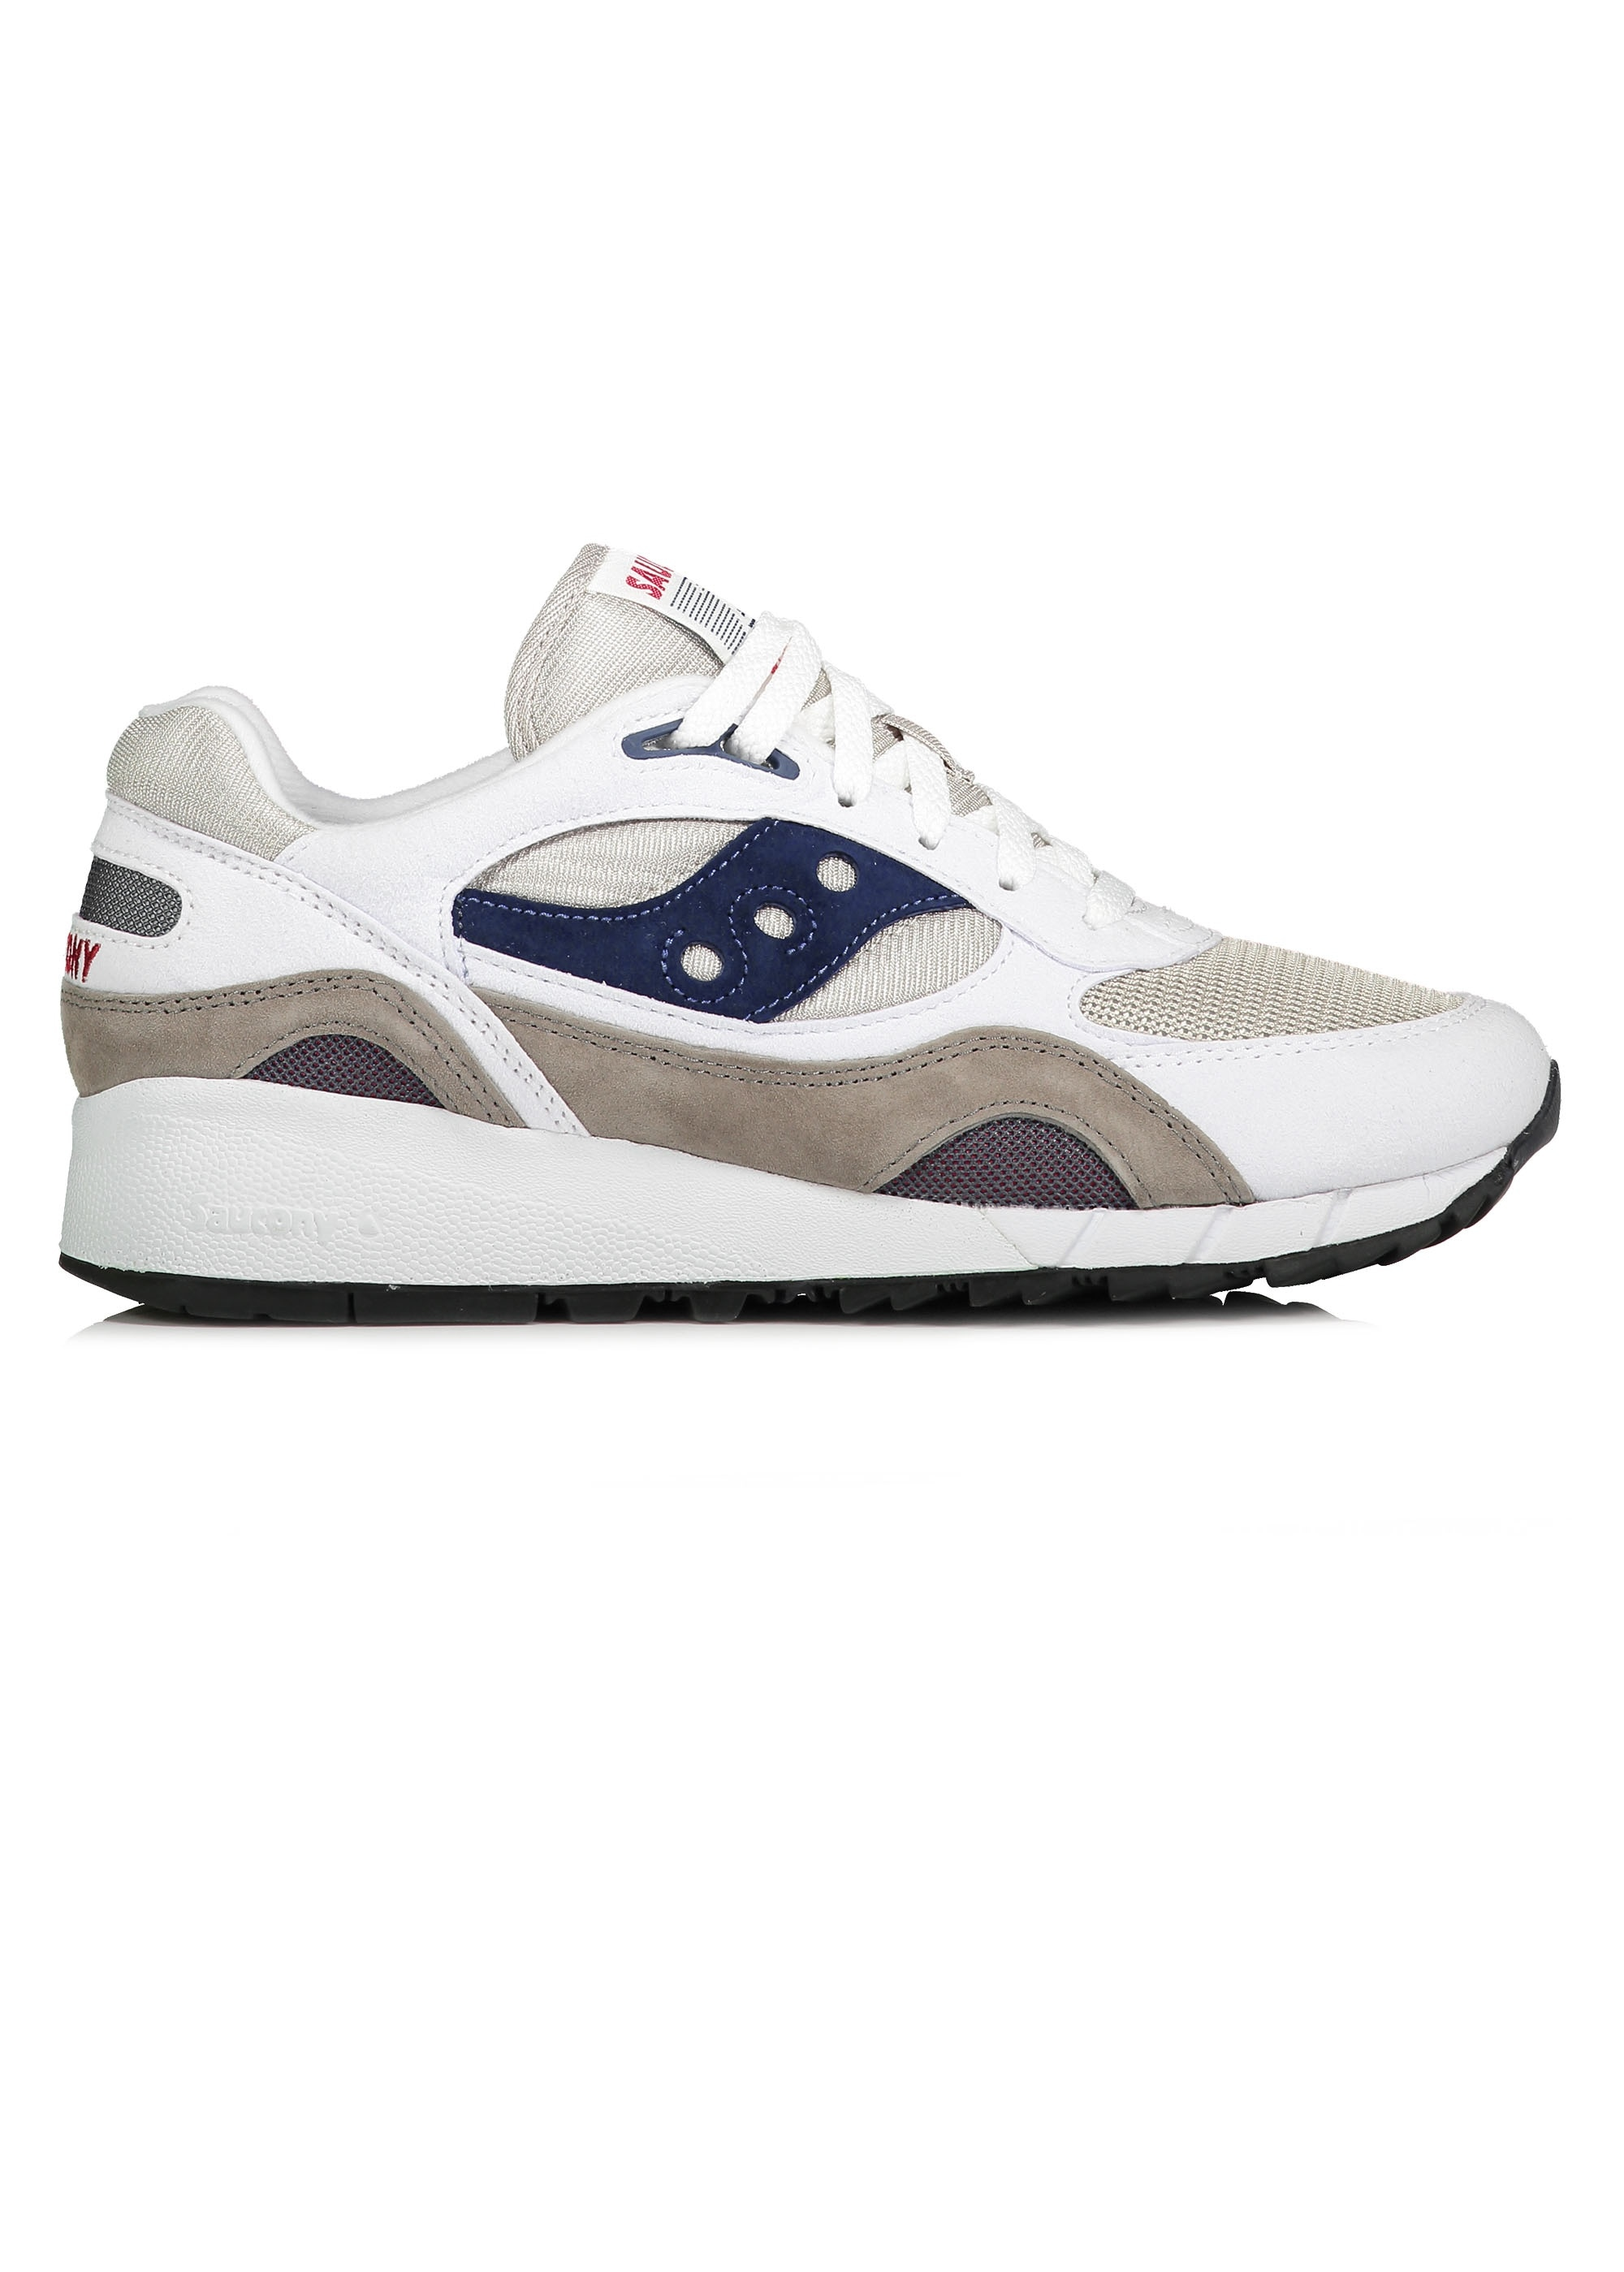 best service 00d55 0a9ad Saucony Shadow 6000 - White / Grey / Navy